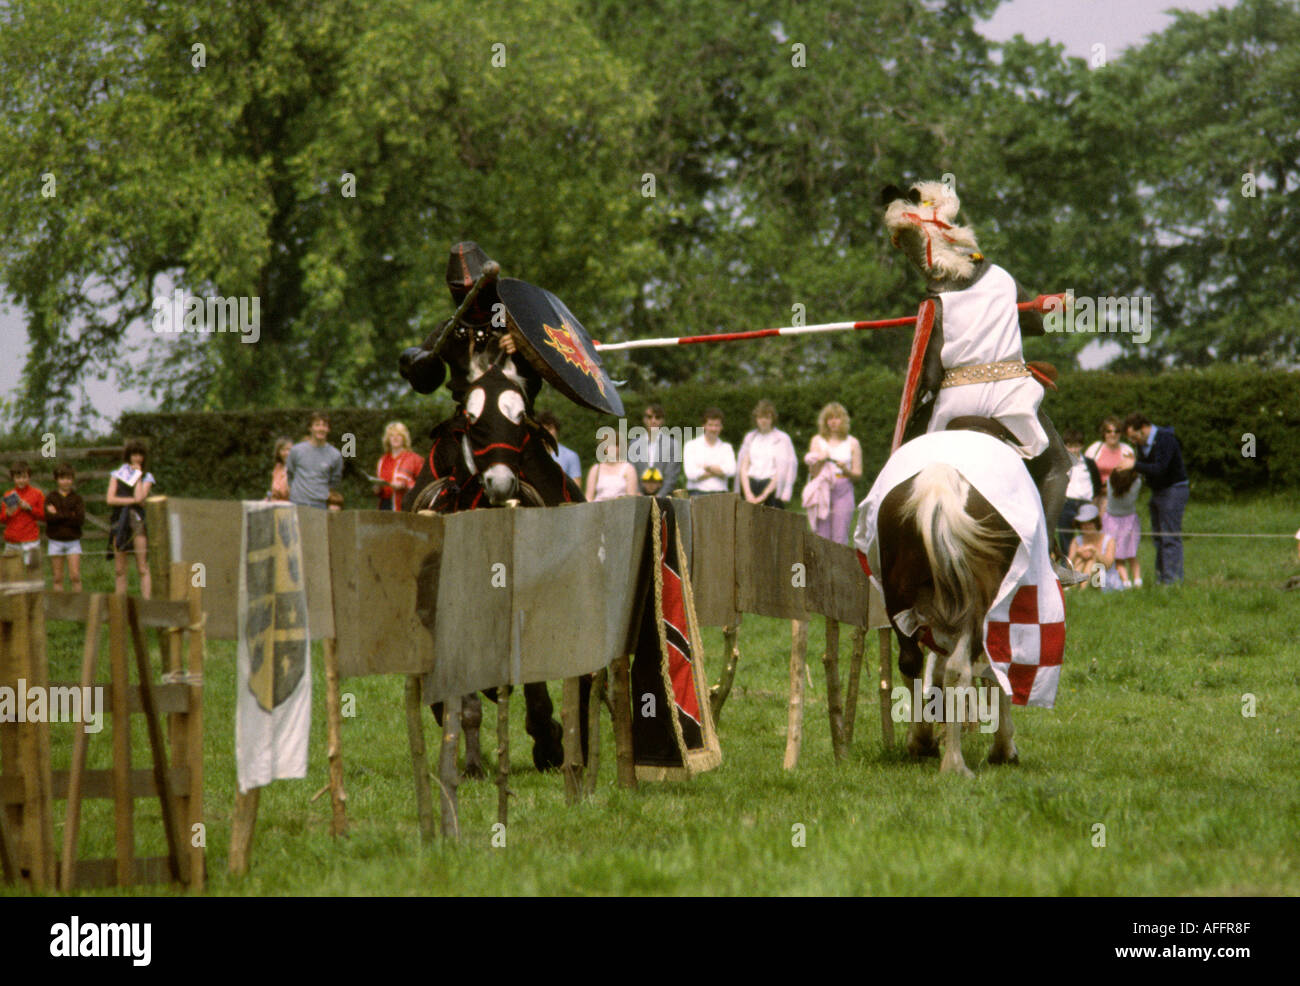 Entertainment medieval knights jousting at country fair - Stock Image